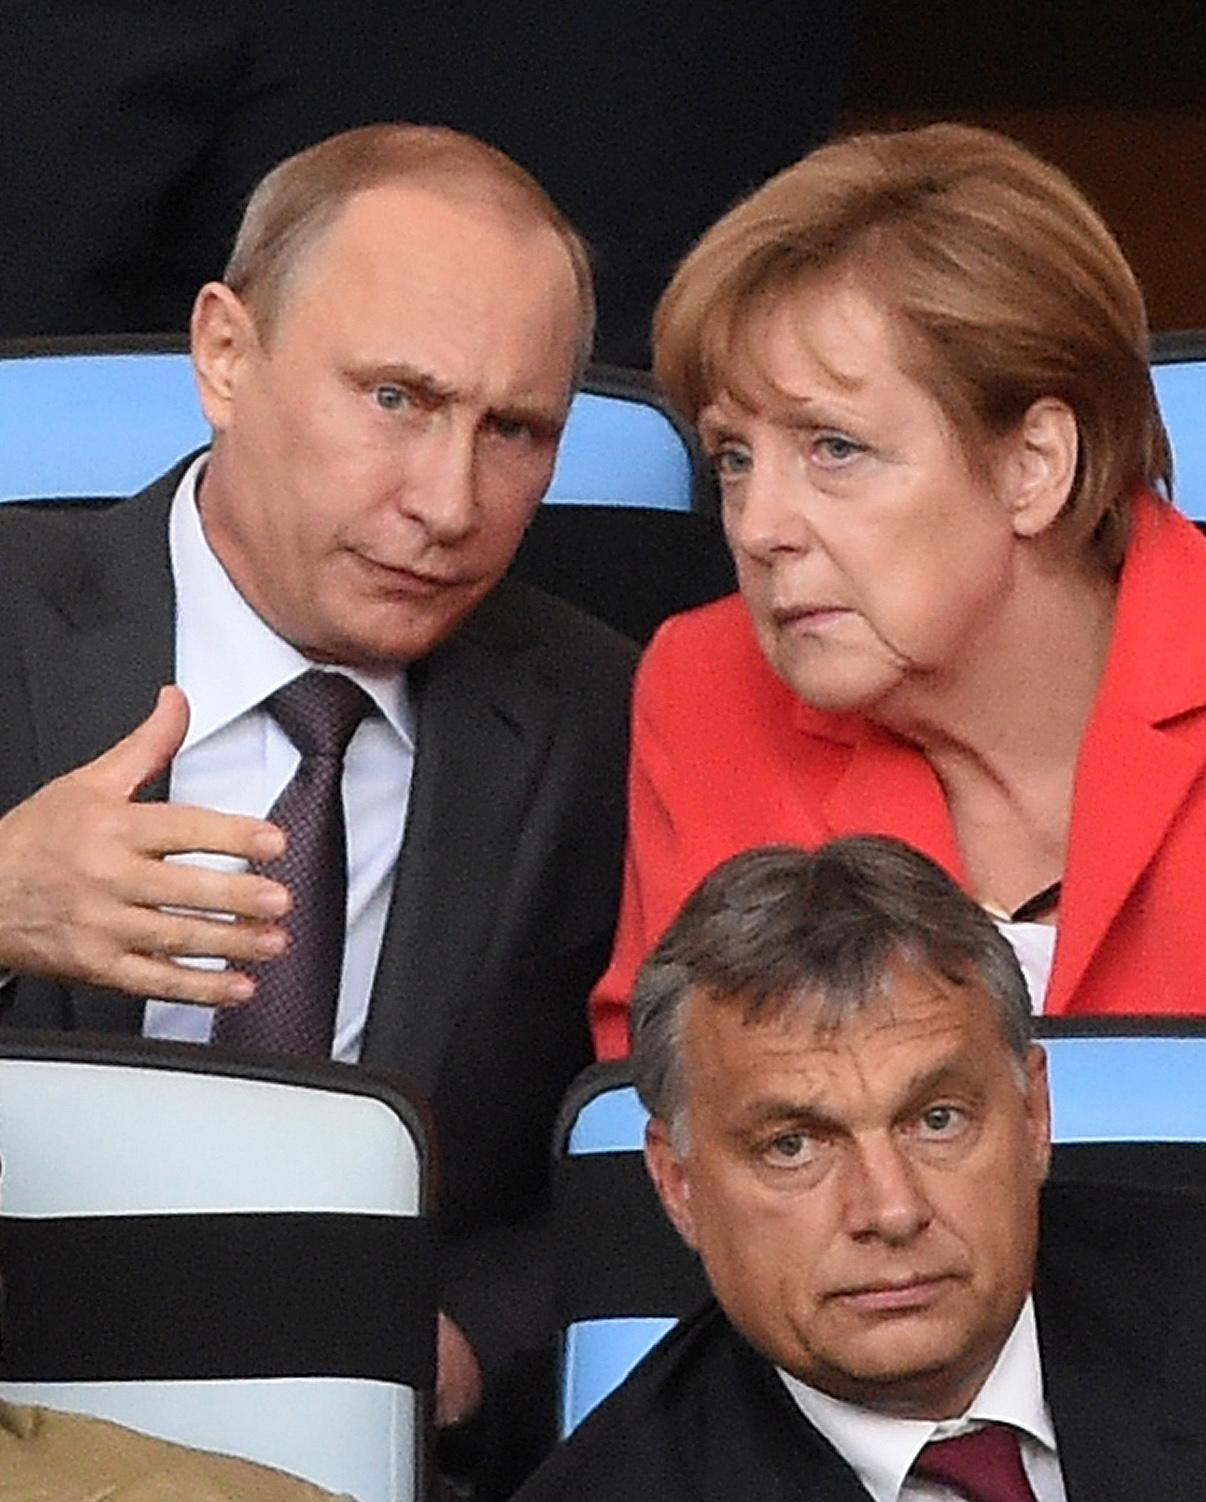 German Chancellor Angela Merkel (top R), Russian President Vladimir Putin and Hungarian Prime Minister Viktor Orban attend the 2014 FIFA World Cup final between Germany and Argentina in Rio de Janeiro on July 13, 2014 (AFP Photo/Pedro Ugarte)